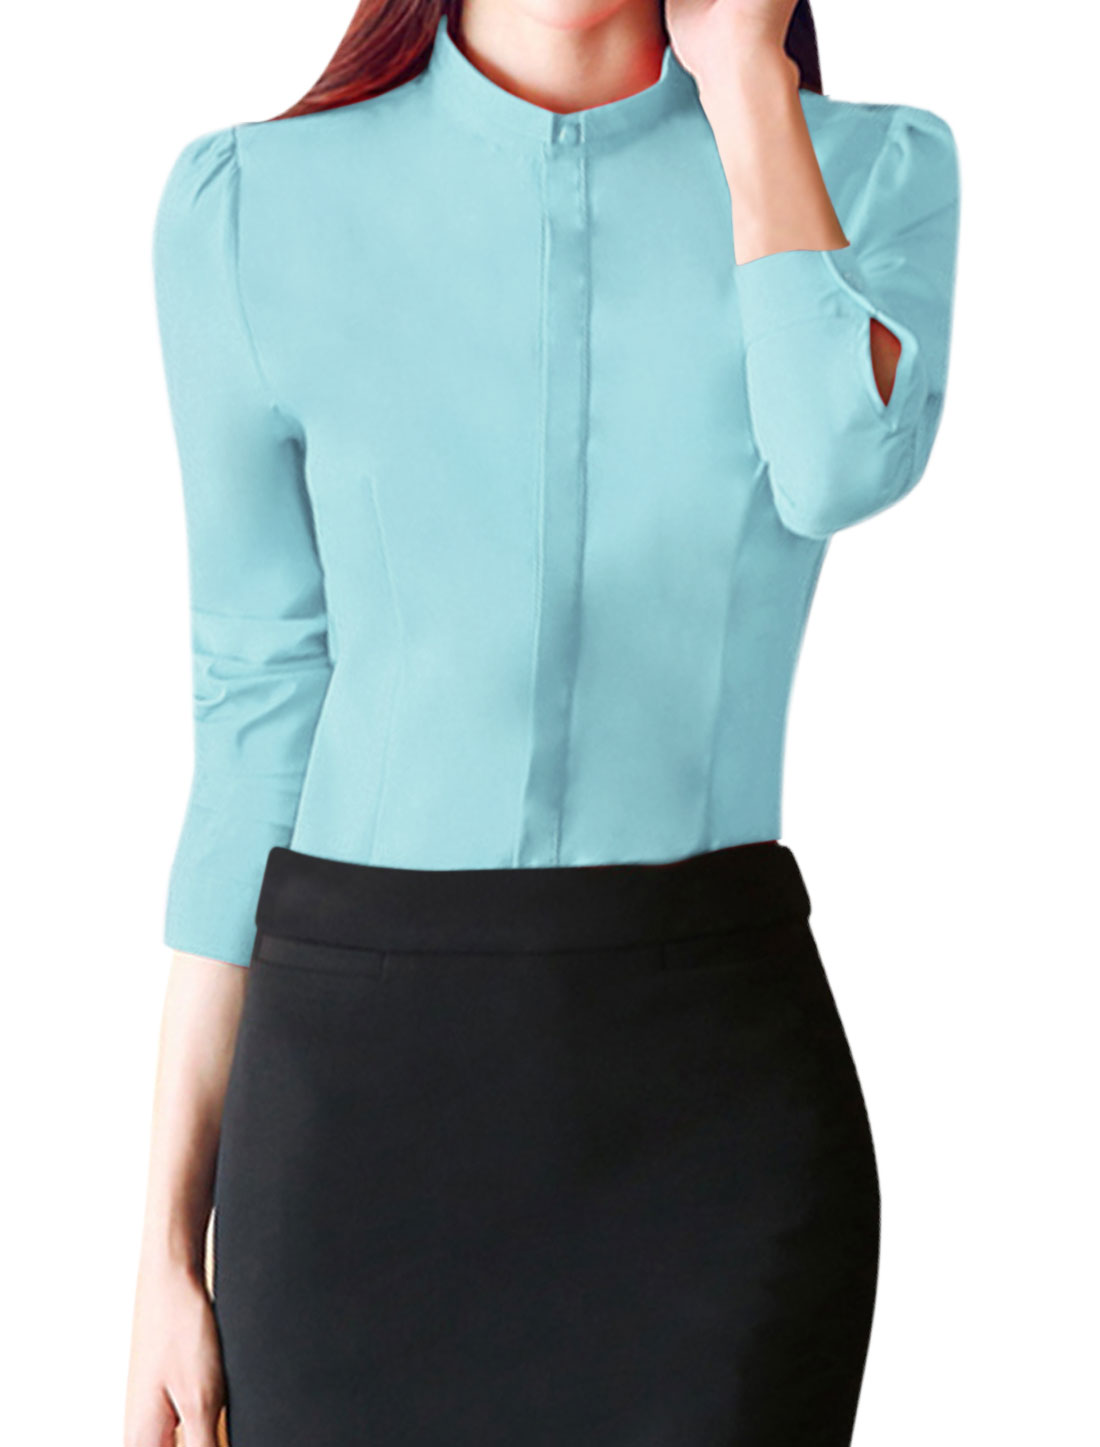 Women Turn Down Collar Single Breasted Slim Fit Shirt Blue L